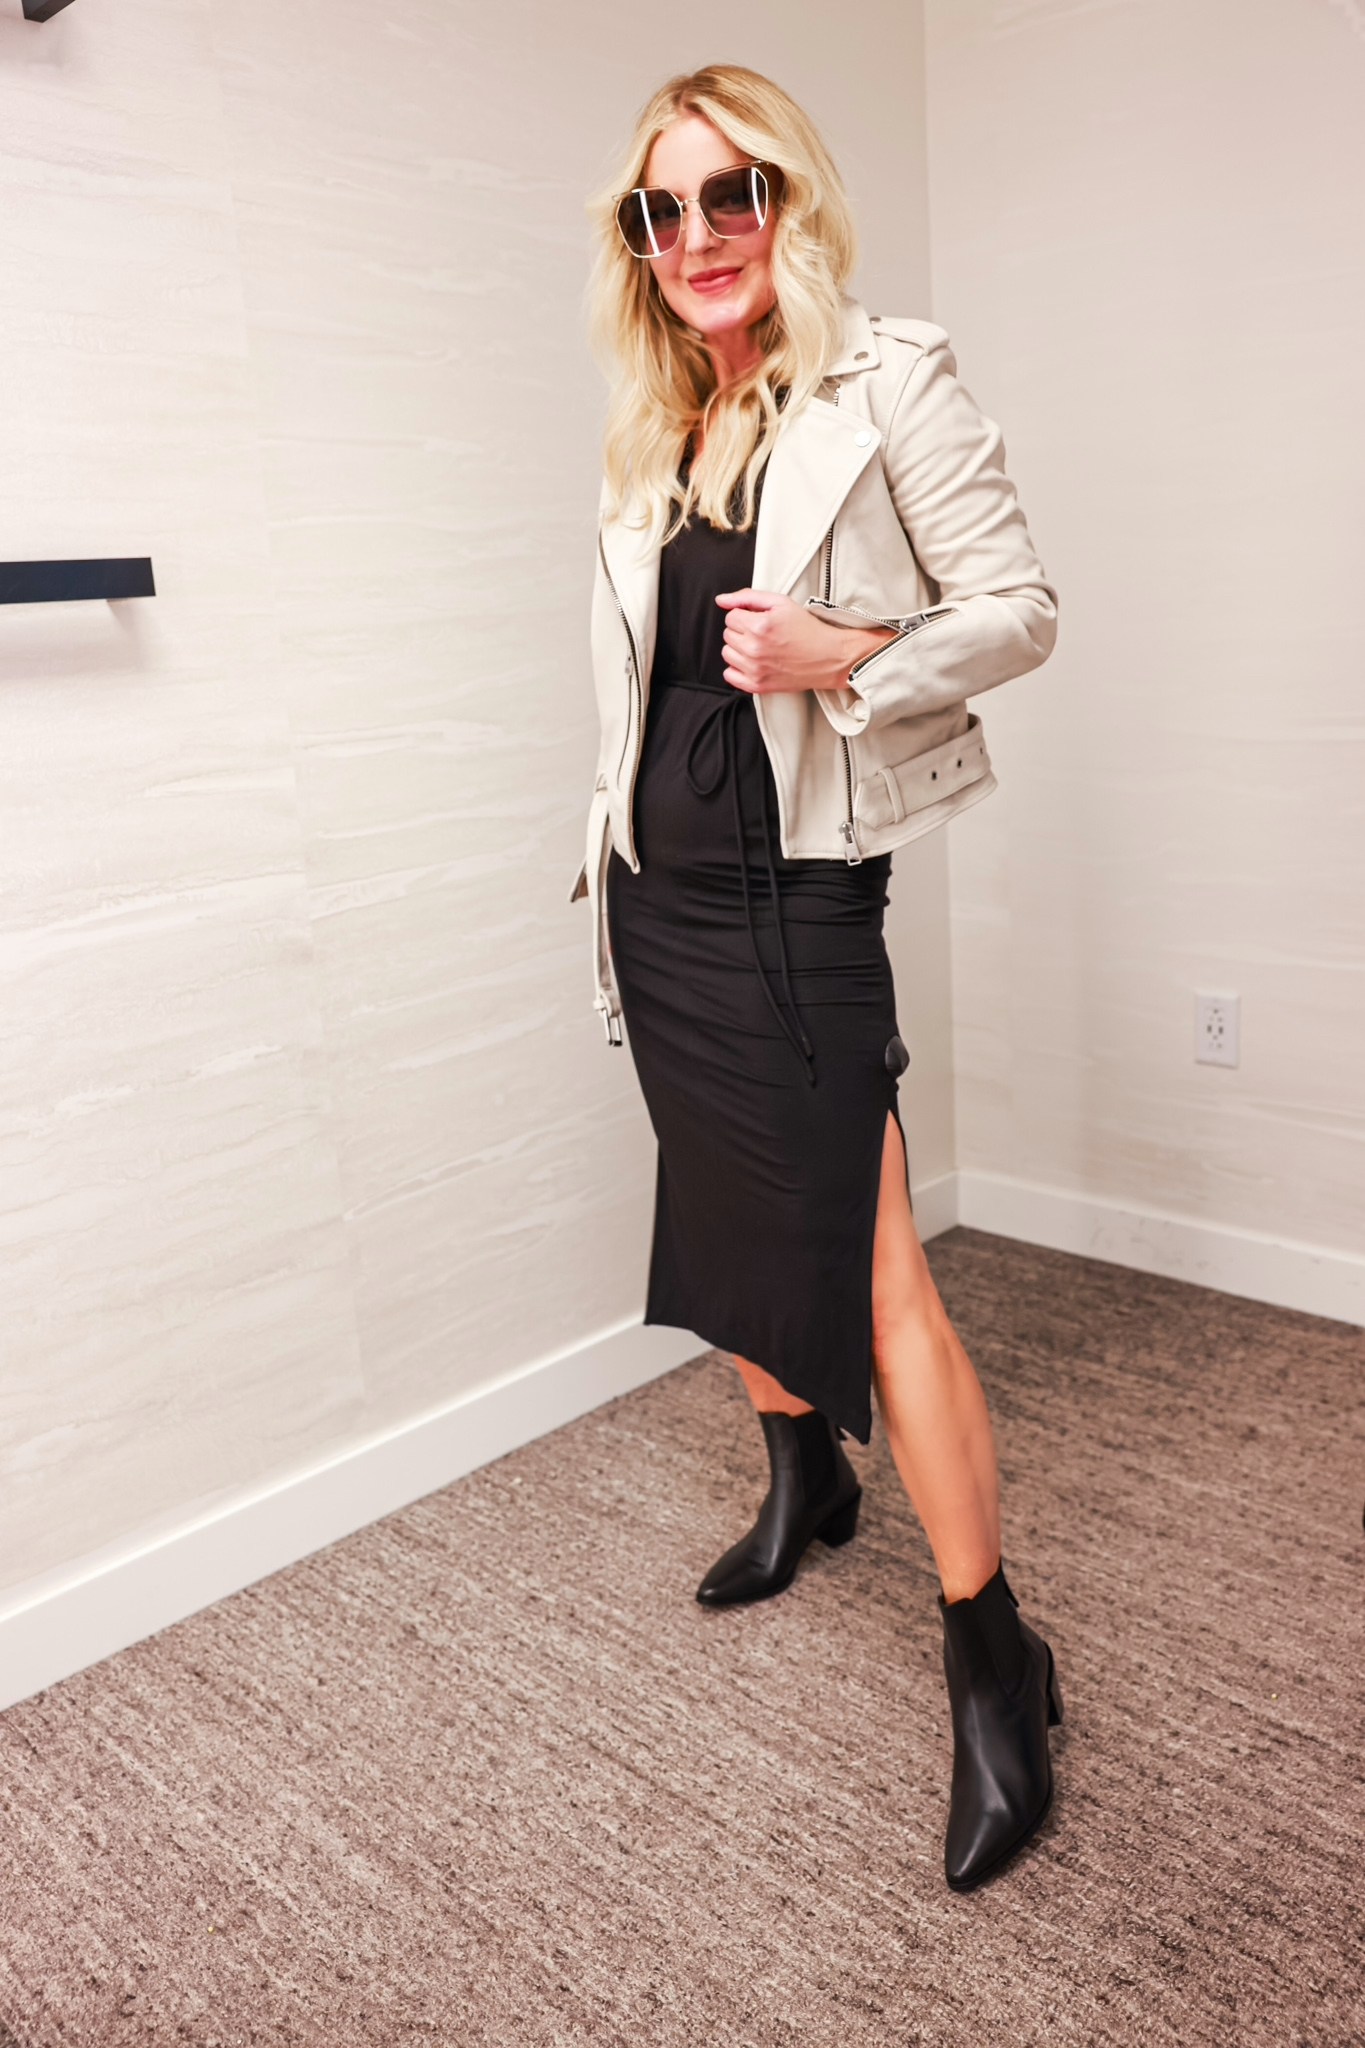 Nordstrom Anniversary Sale 2021 Vince midi dress in black with AllSaints dove gray leather jacket and black pointed toe booties on fashion blogger ove 40 Erin Busbee